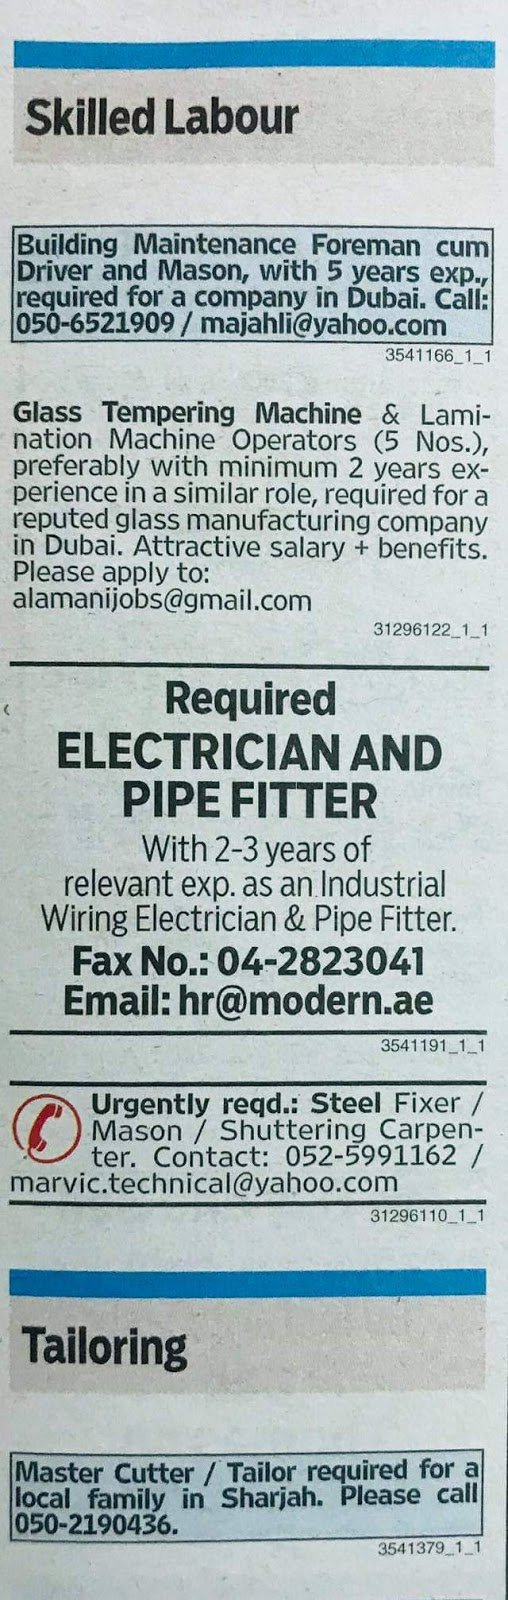 Required Electrician, Pipe Fitter,Foreman cum Driver, Cutter/Tailor